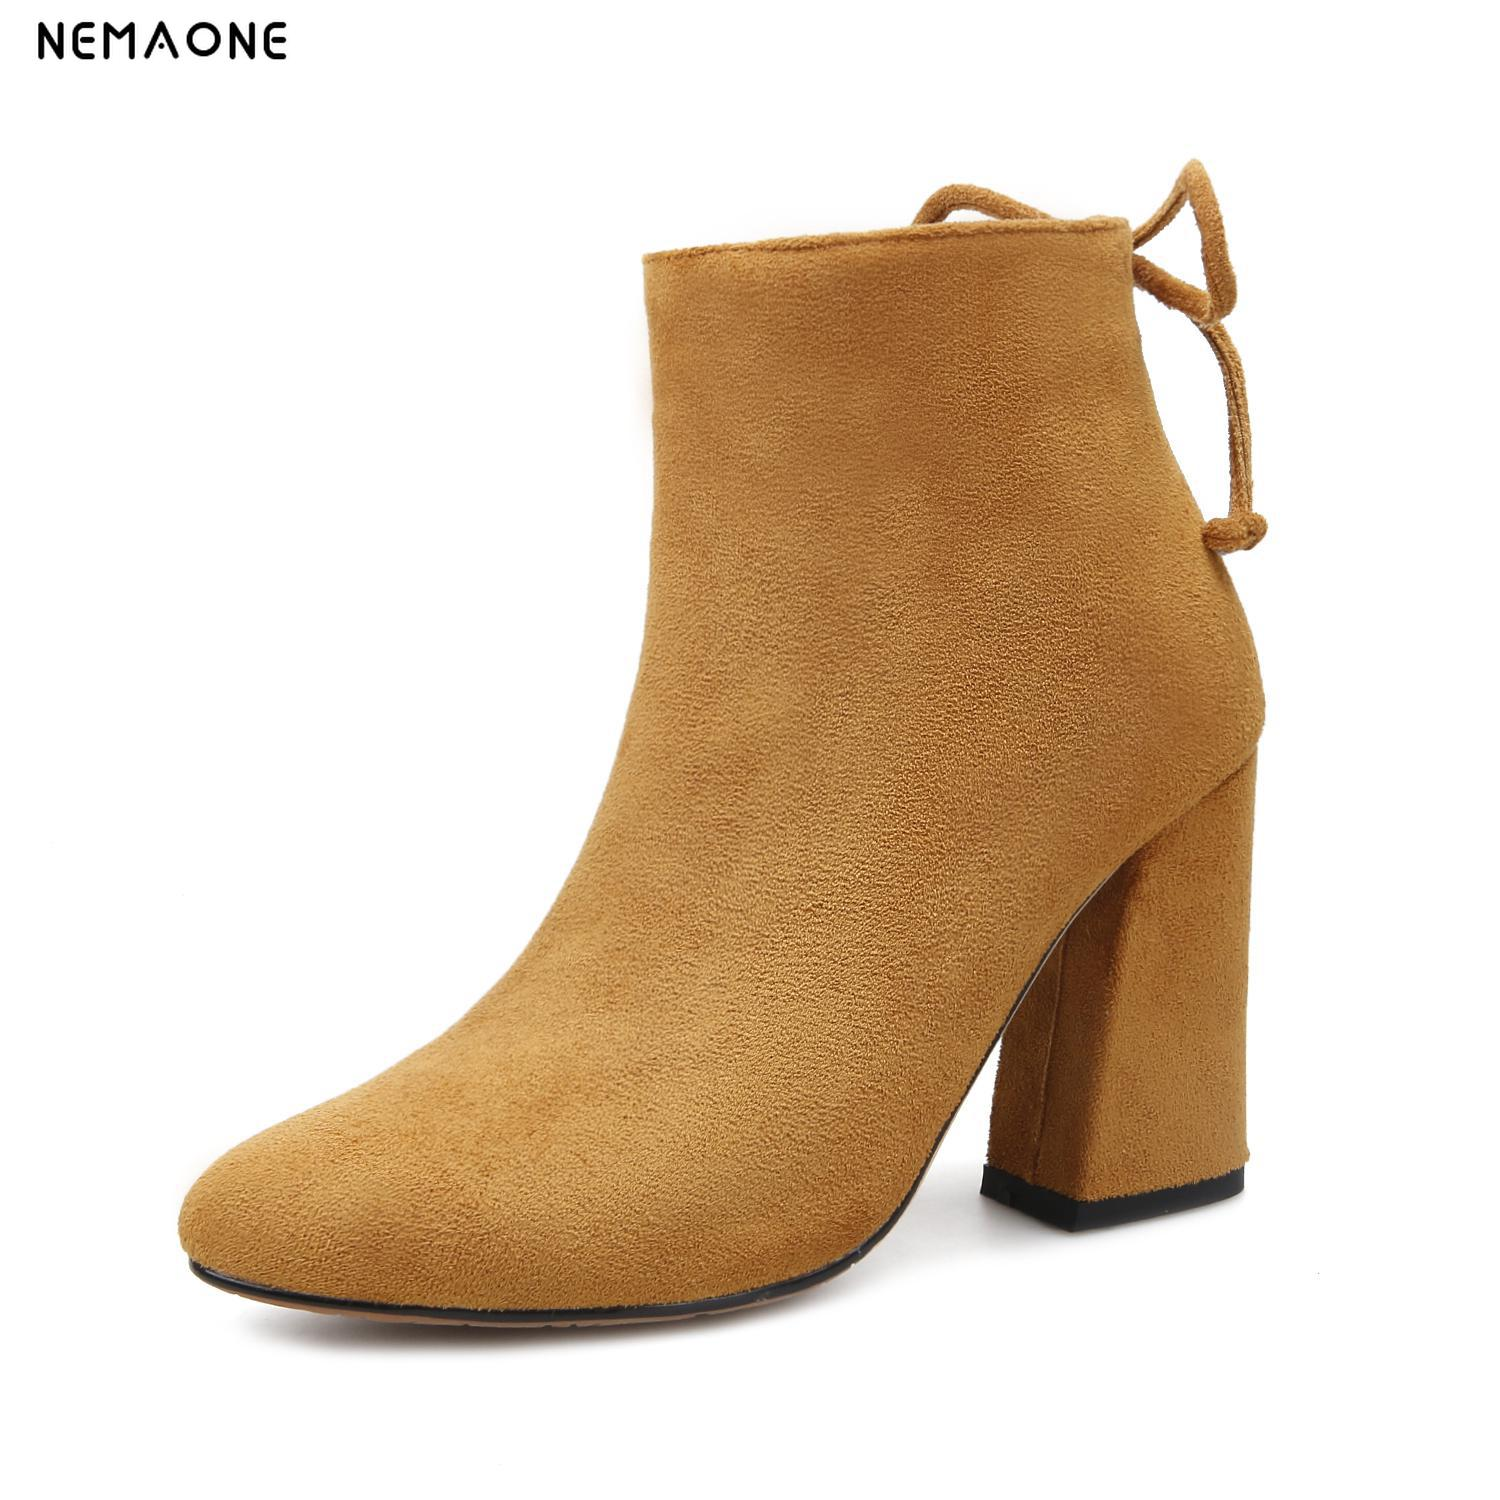 NEMAONE 2017 new ankle boots fashion square toe thick heel women boots high heel genuine leather lady boots us size 9 10 11 12 sfzb new square toe lace up genuine leather solid nude women ankle boots thick heel brand women shoes causal motorcycles boot